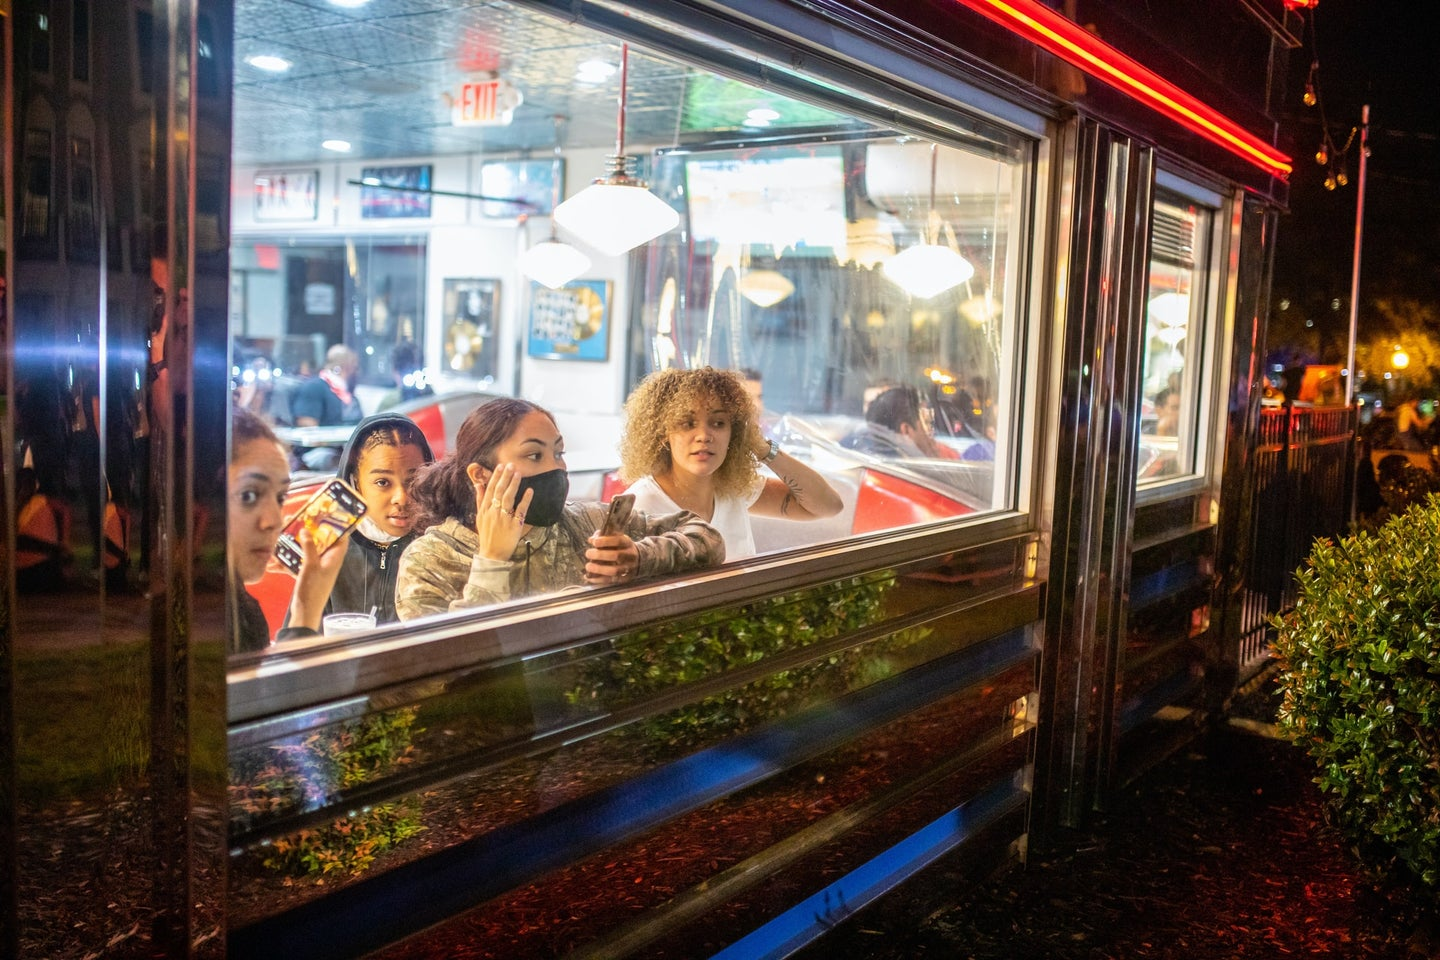 People wearing masks looking out the window of a diner during the COVID-19 pandemic